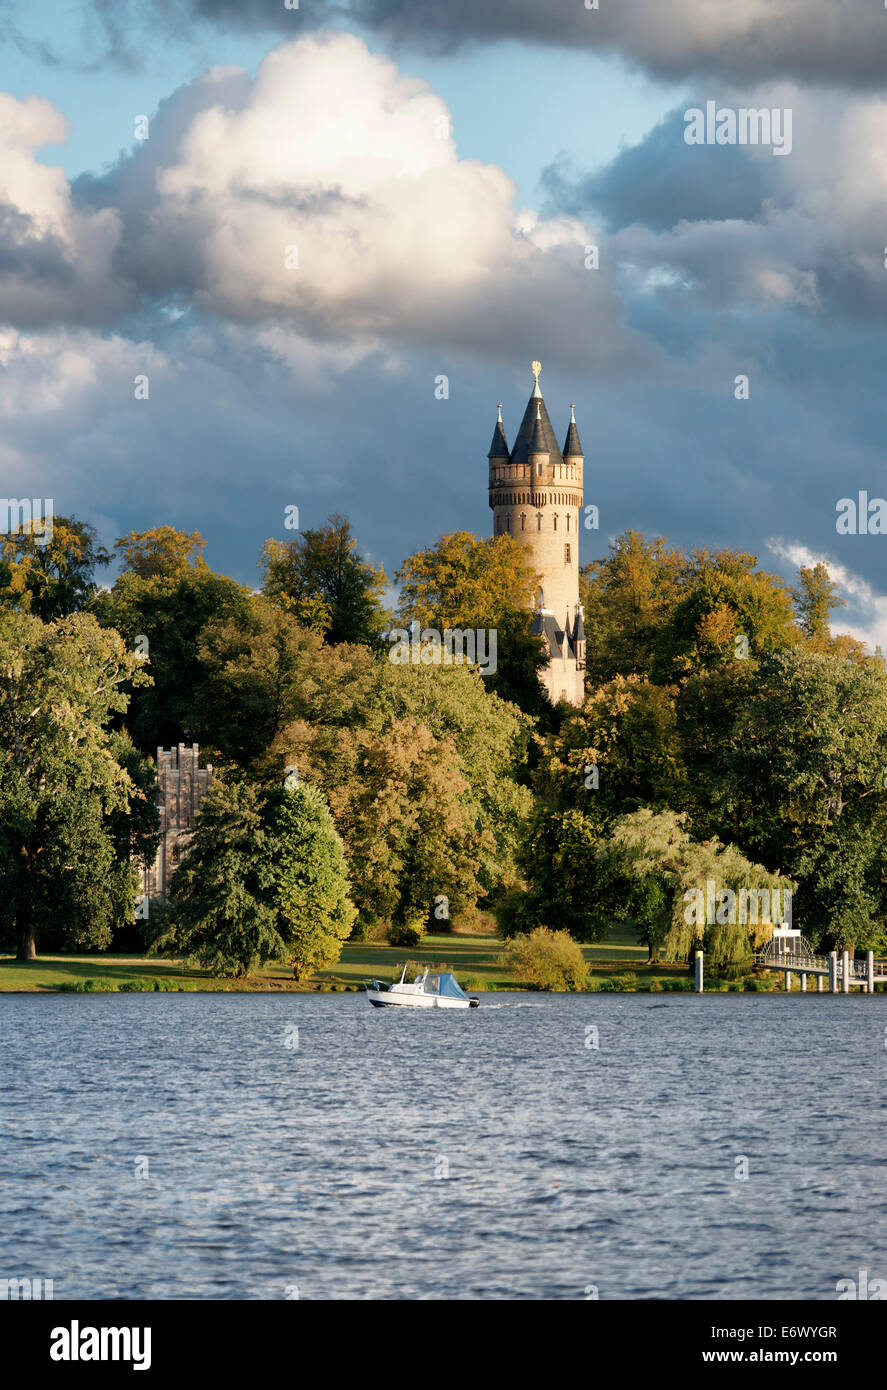 Tiefen See Lake on the Havel, Sailors' House and Flatow Tower in Park Babelsberg, Potsdam, Land Brandenburg, Germany Stock Photo